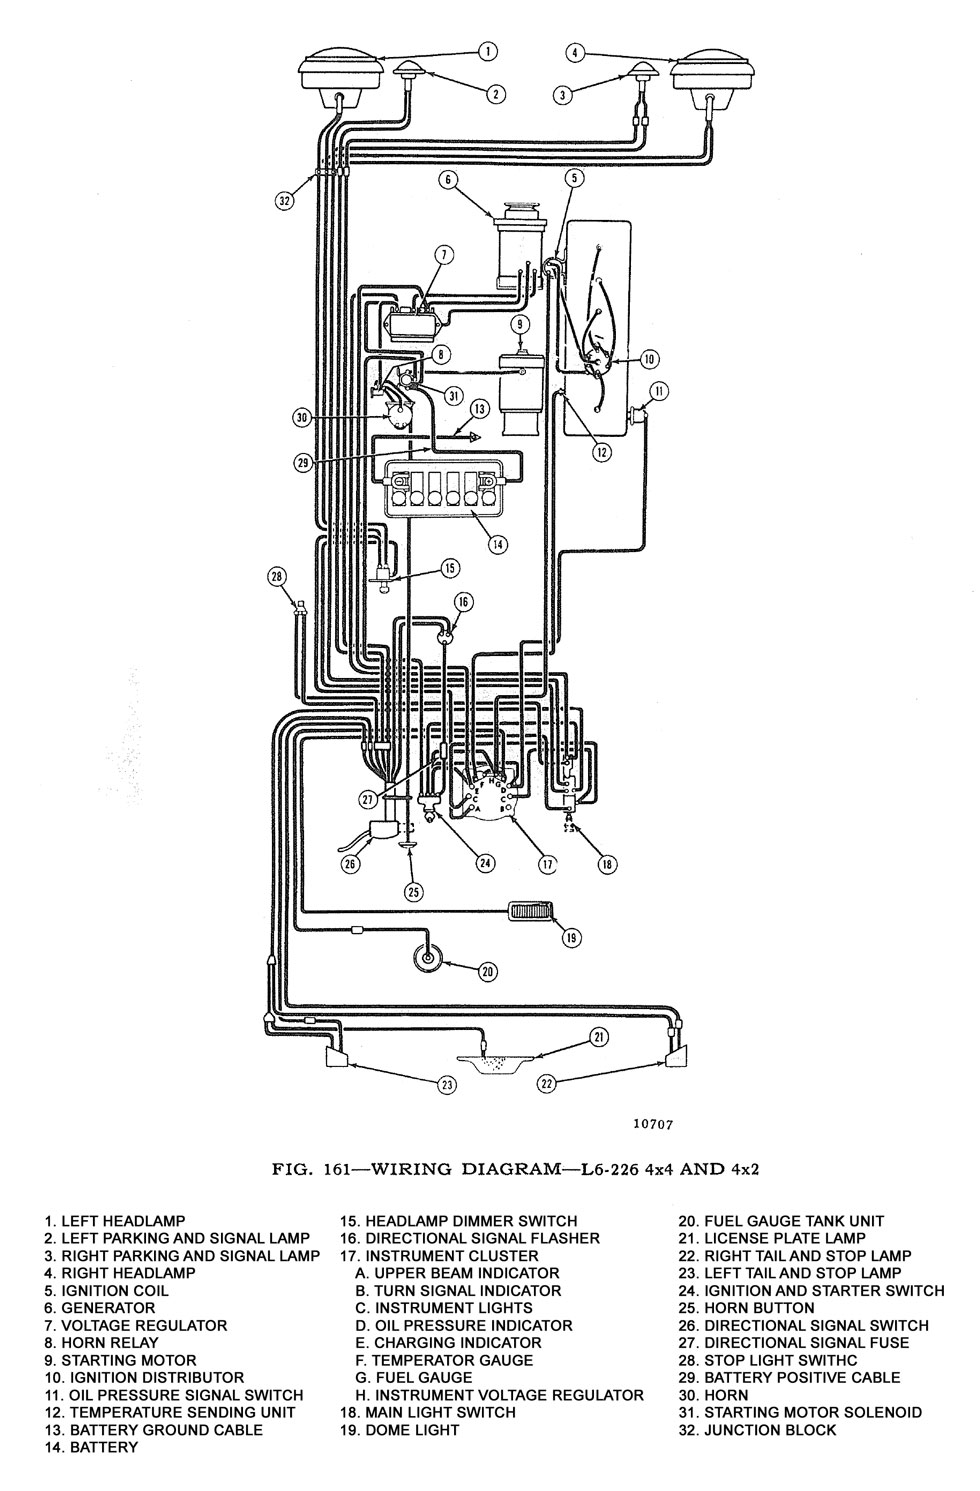 medium resolution of wiring diagram l6 226 4x4 and 4x2